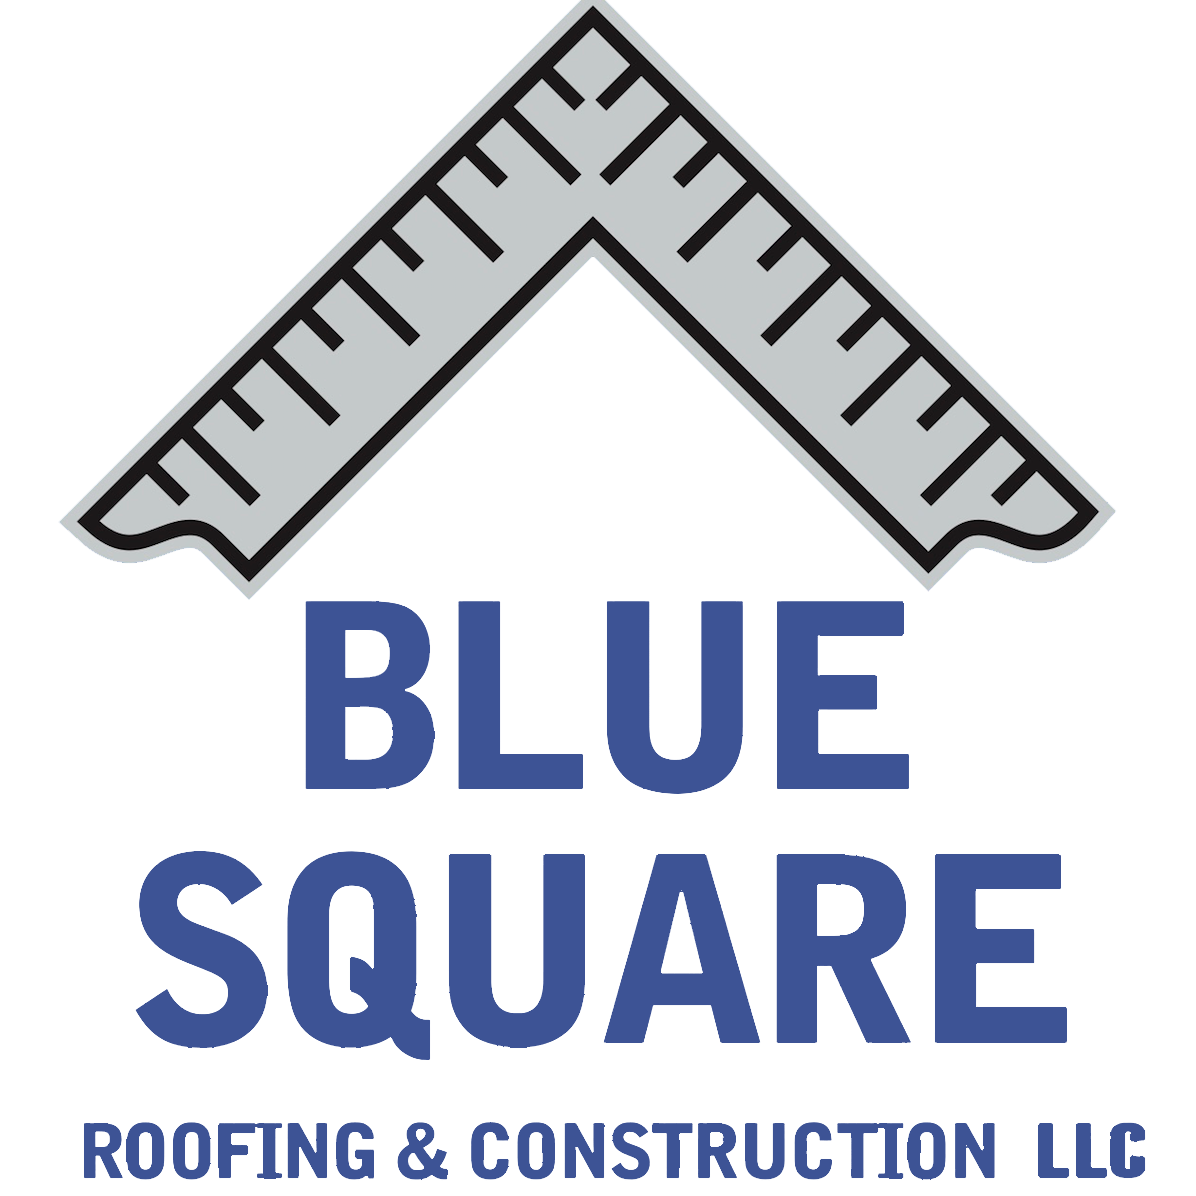 Blue Square Roofing & Construction LLC